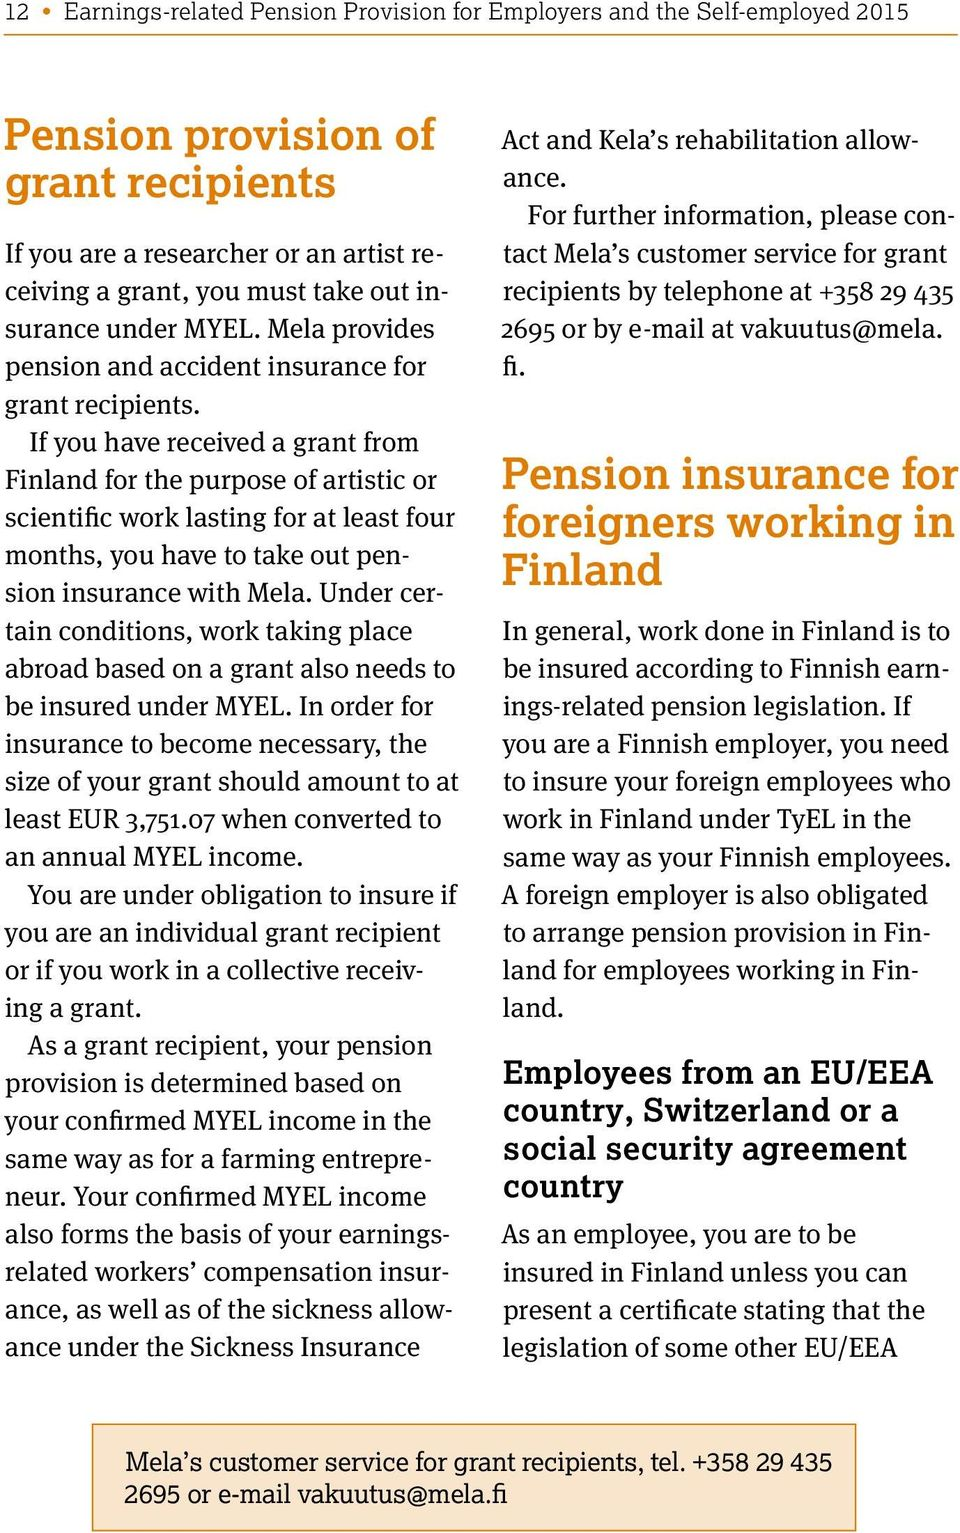 If you have received a grant from Finland for the purpose of artistic or scientific work lasting for at least four months, you have to take out insurance with Mela.